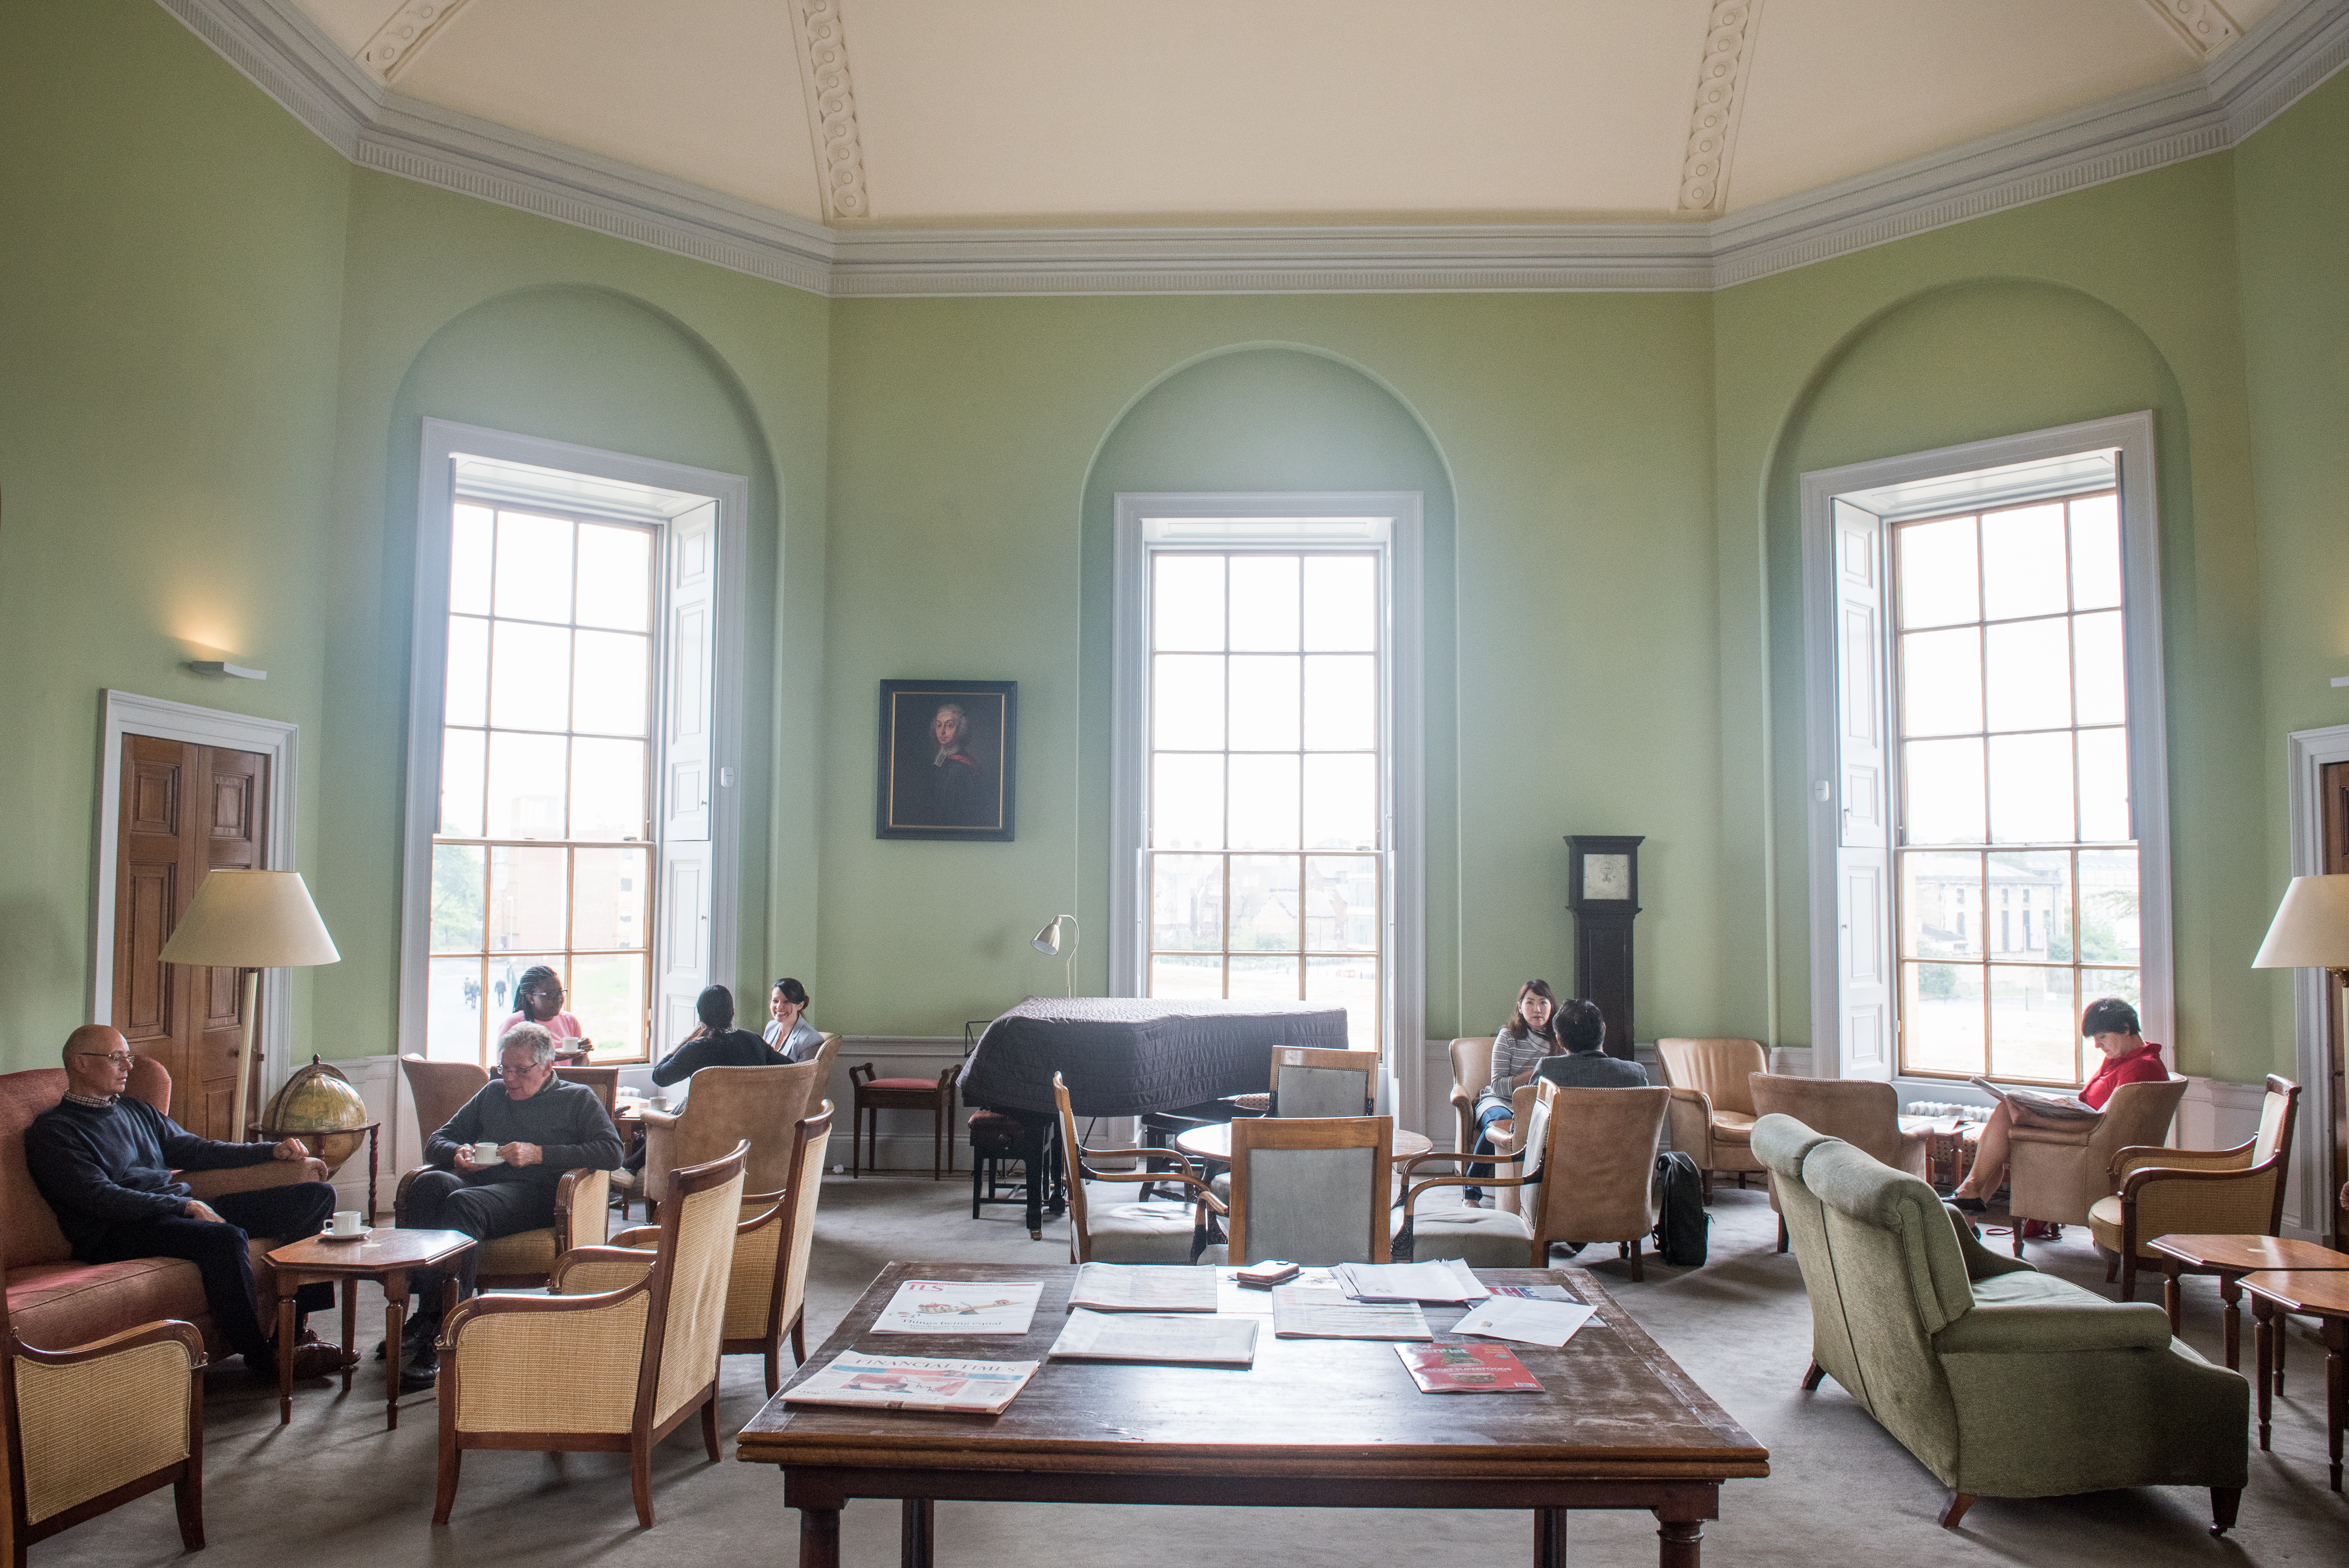 Radcliffe Observatory Common Room. Photo (c) John Cairns